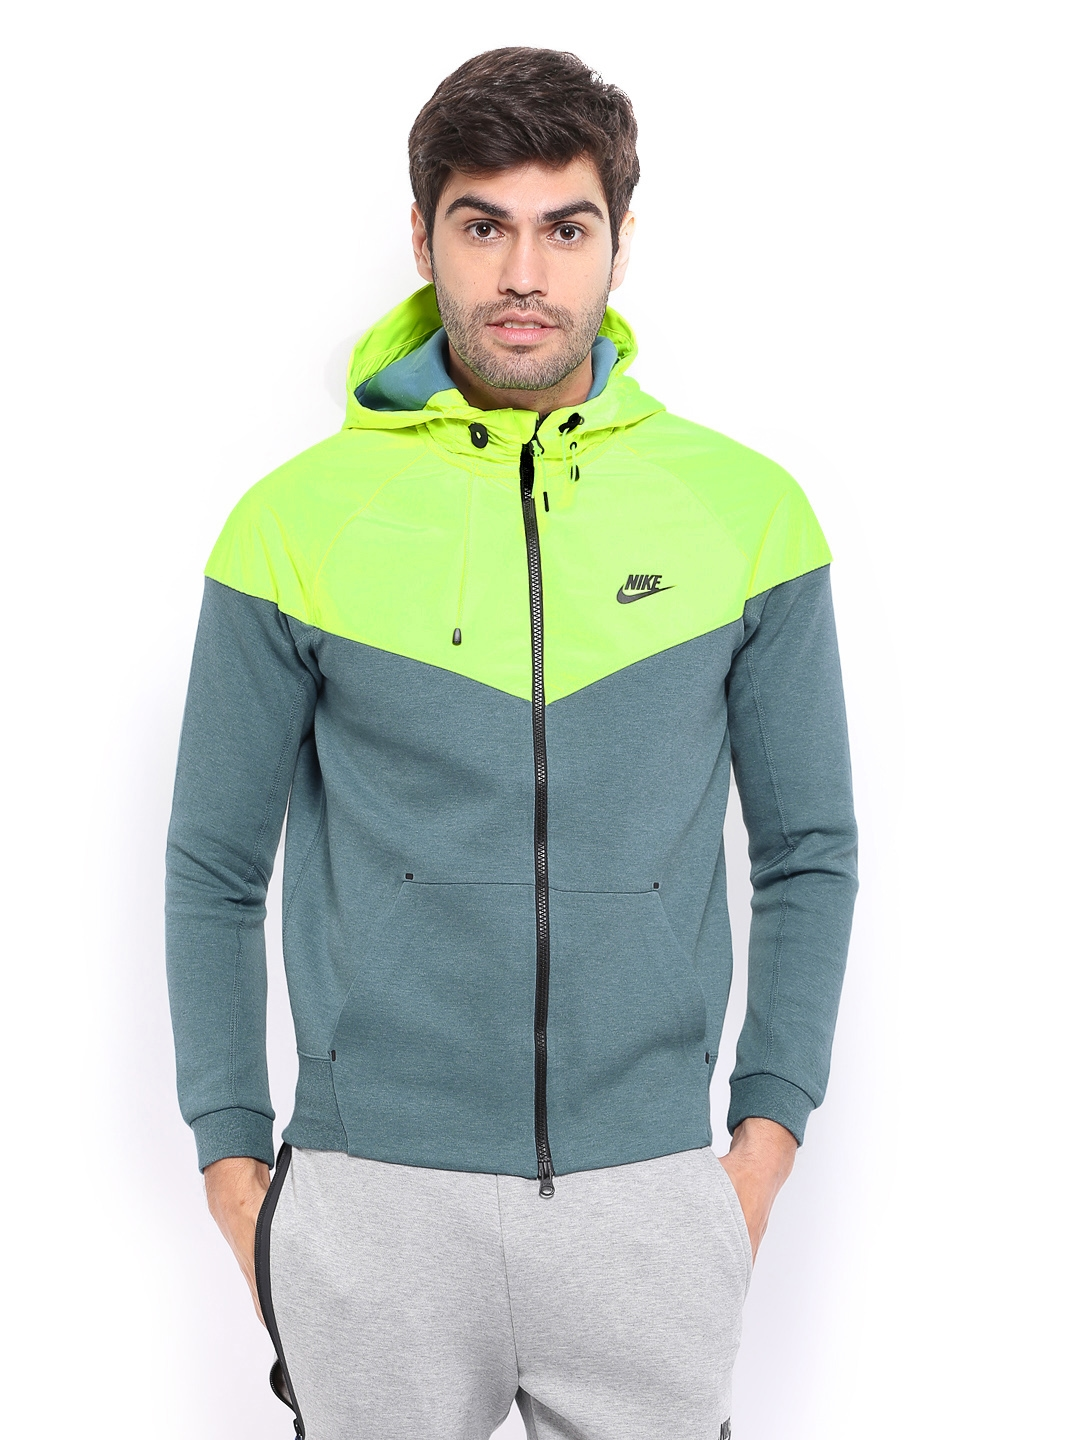 Nike Men Neon Green Hooded Jacket